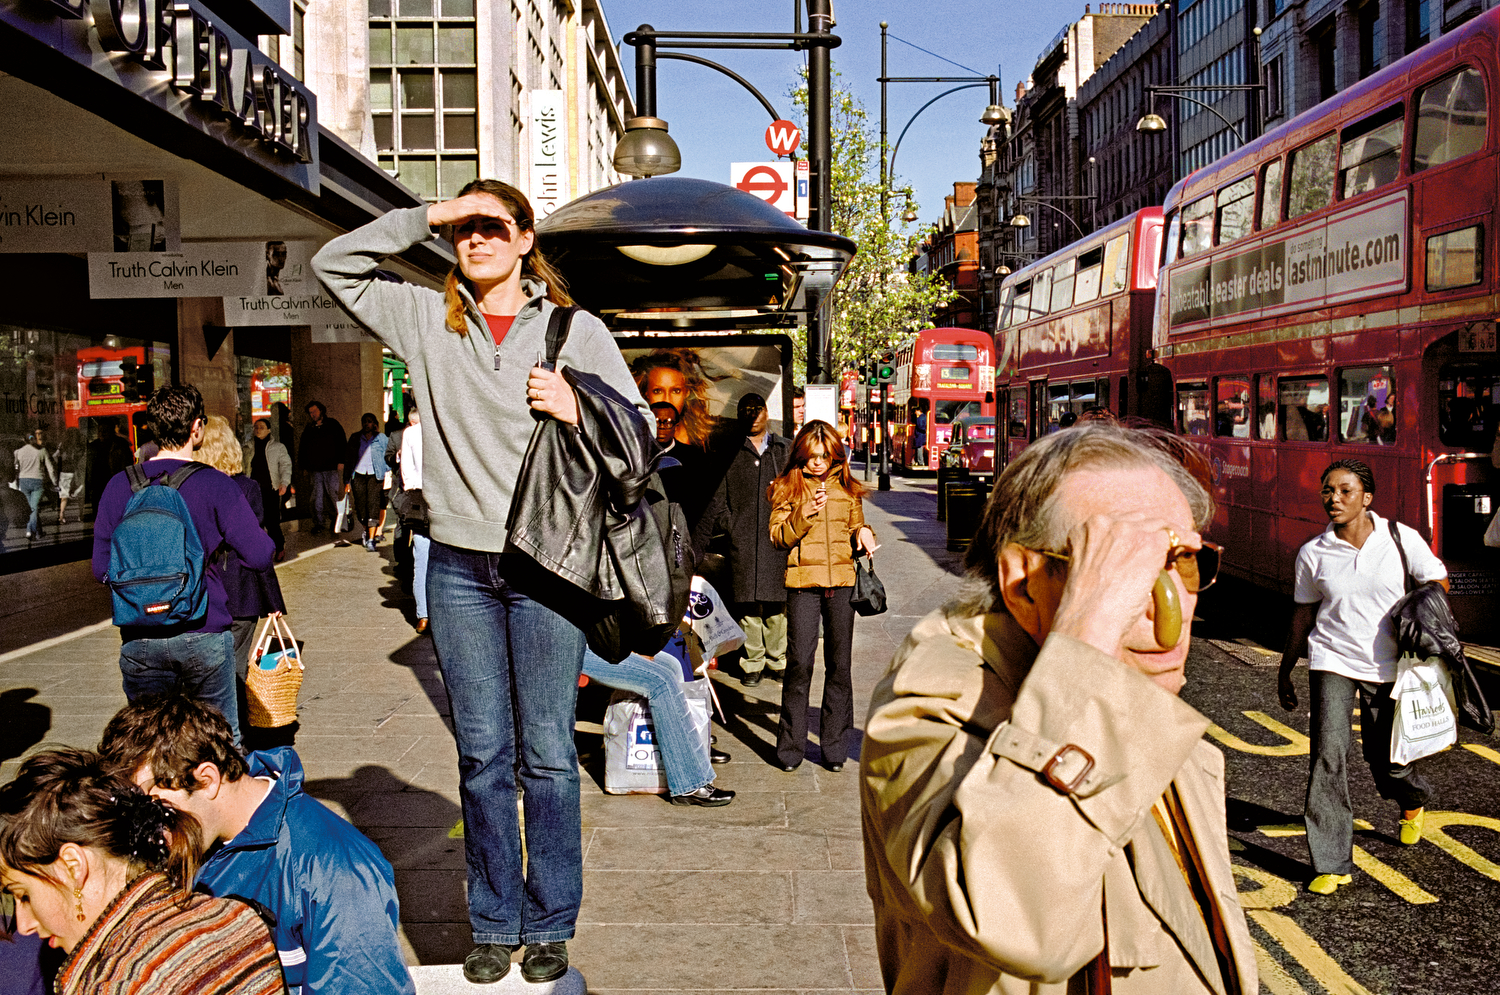 MATT STUART_PHOTOGRAPHER_STREET_COLOUR_LONDON_01.jpg